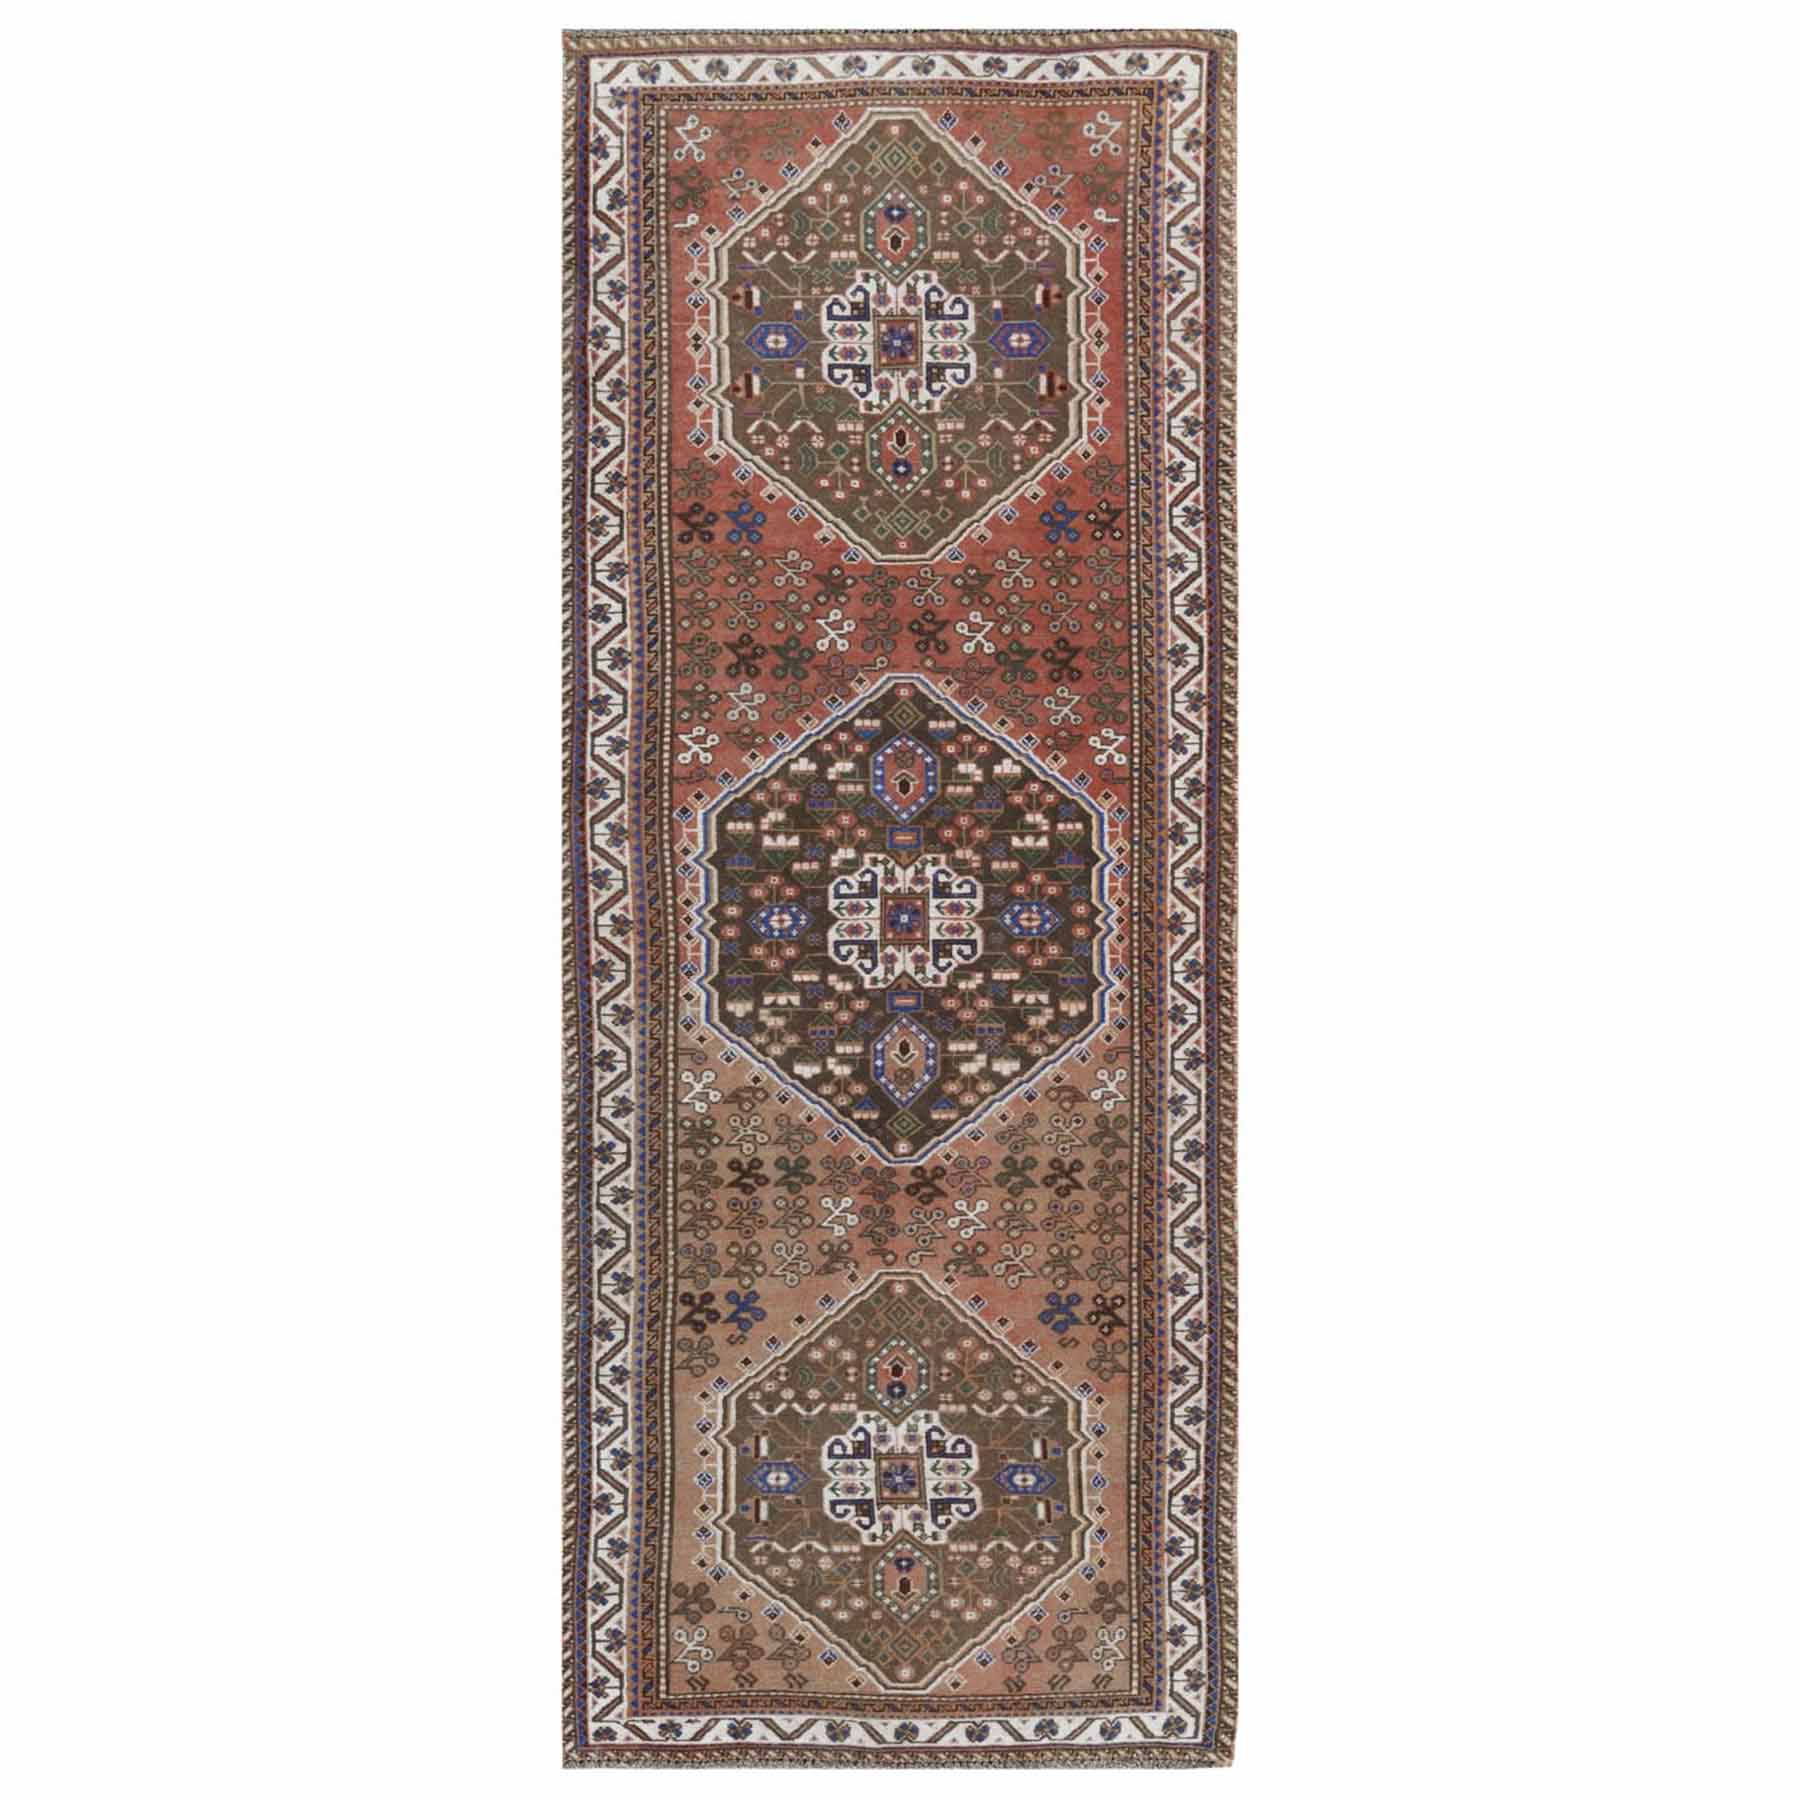 Overdyed-Vintage-Hand-Knotted-Rug-289855